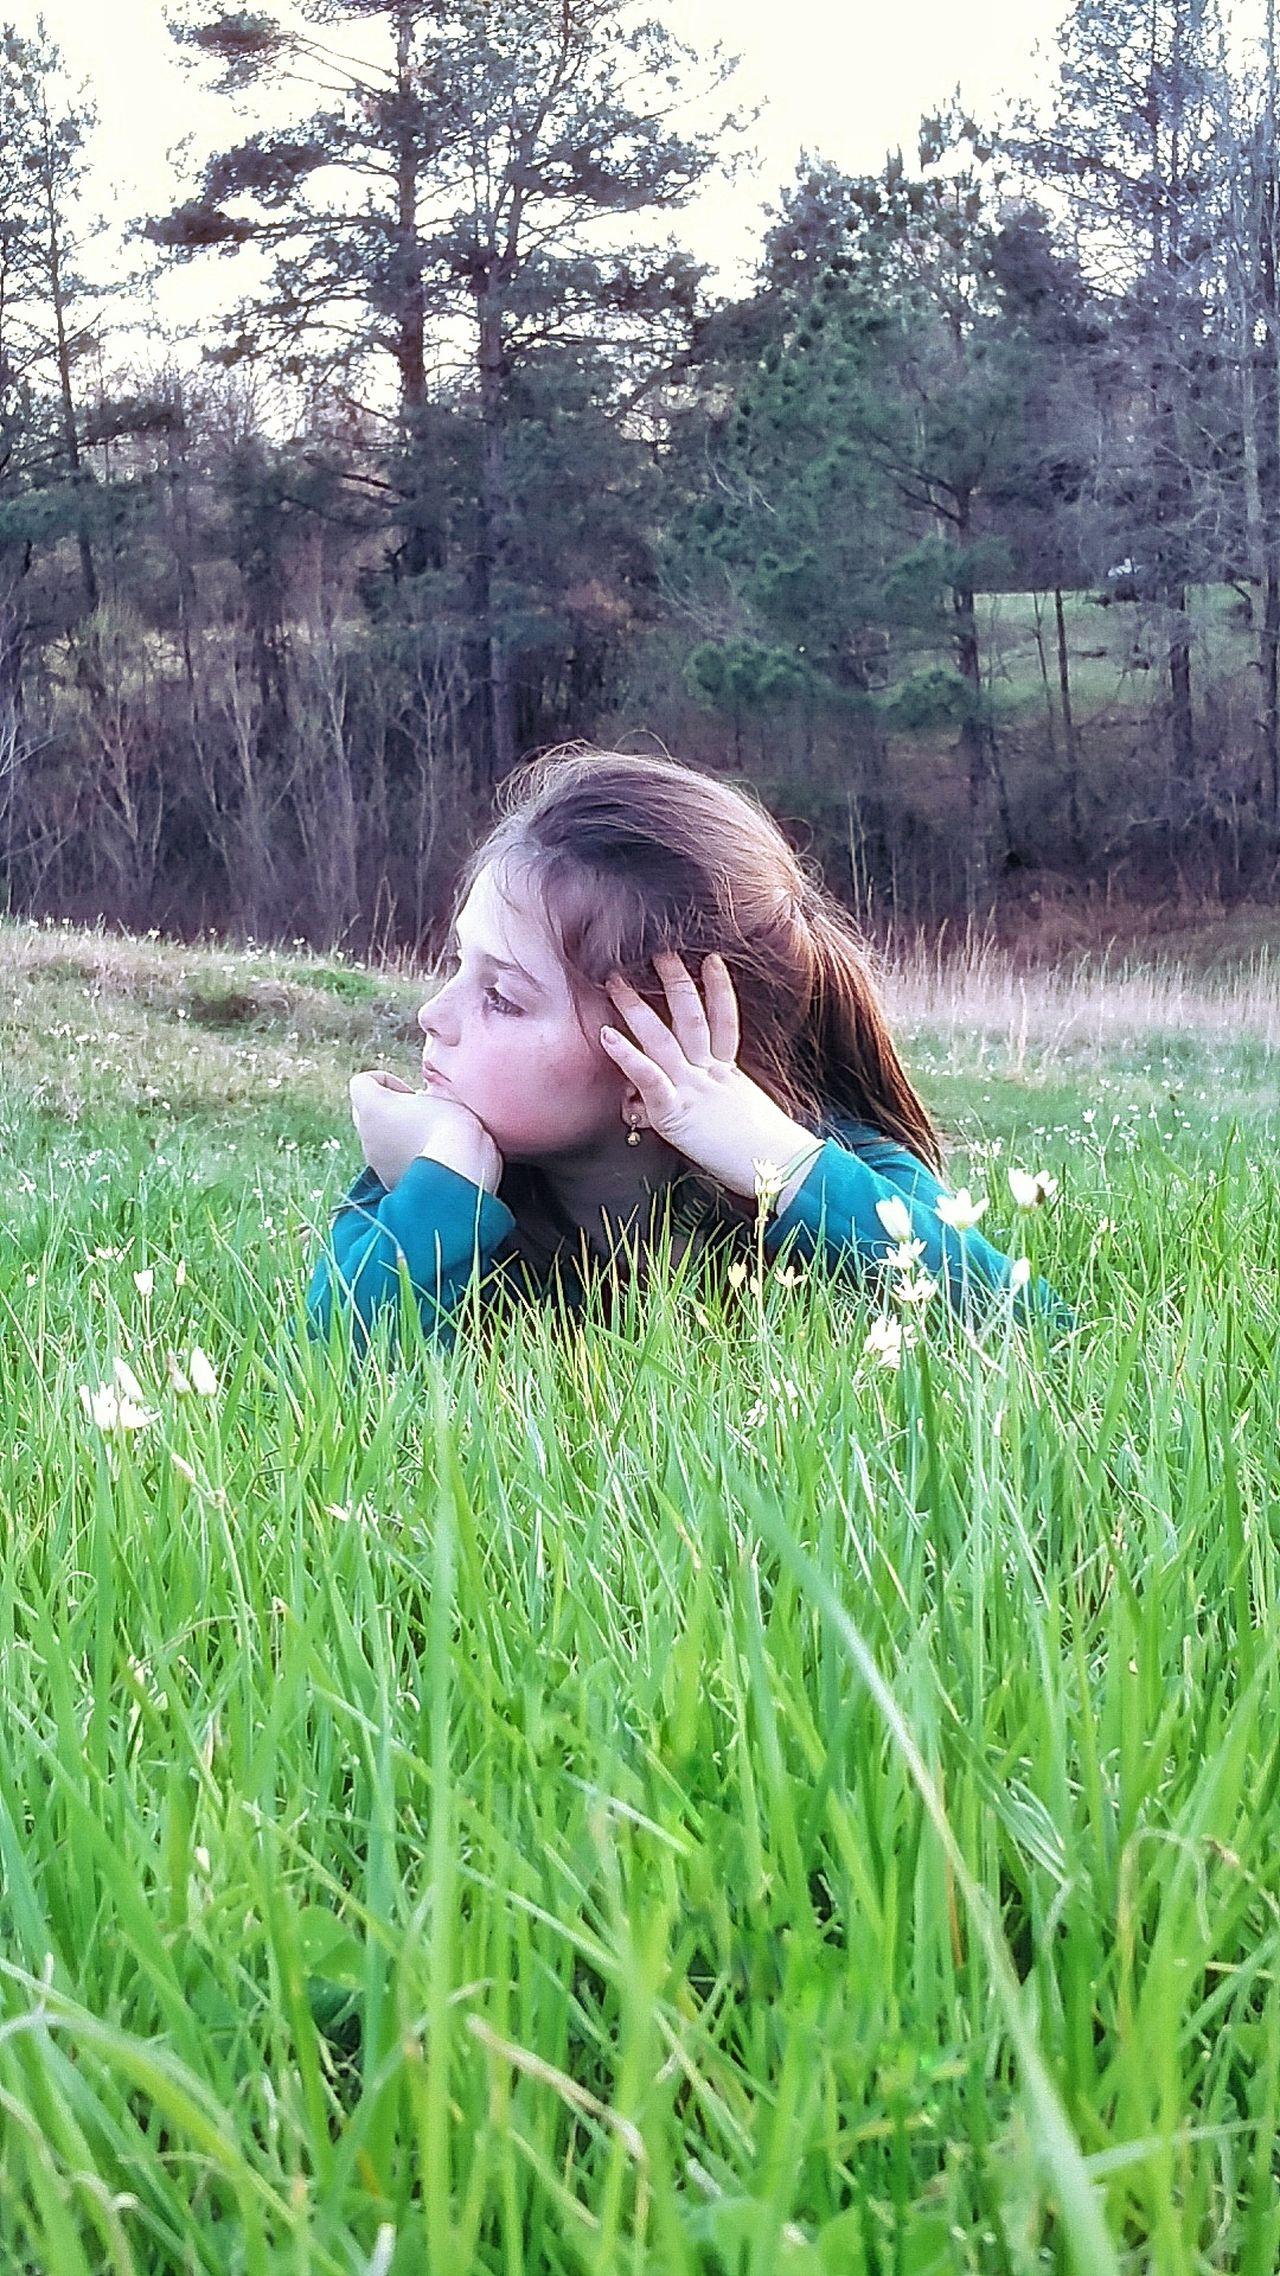 Grass One Person Field Growth Outdoors Beauty In Nature Nature Casual Clothing Child Laying In The Grass Wildflowers Day Dreaming Girl Enjoying The Outdoors Flower Lover Outdoor Photography Children Photography Childhood Falling In Love Young Lady Enjoying The Moment Playing Outside Nature Lover People Child Playing